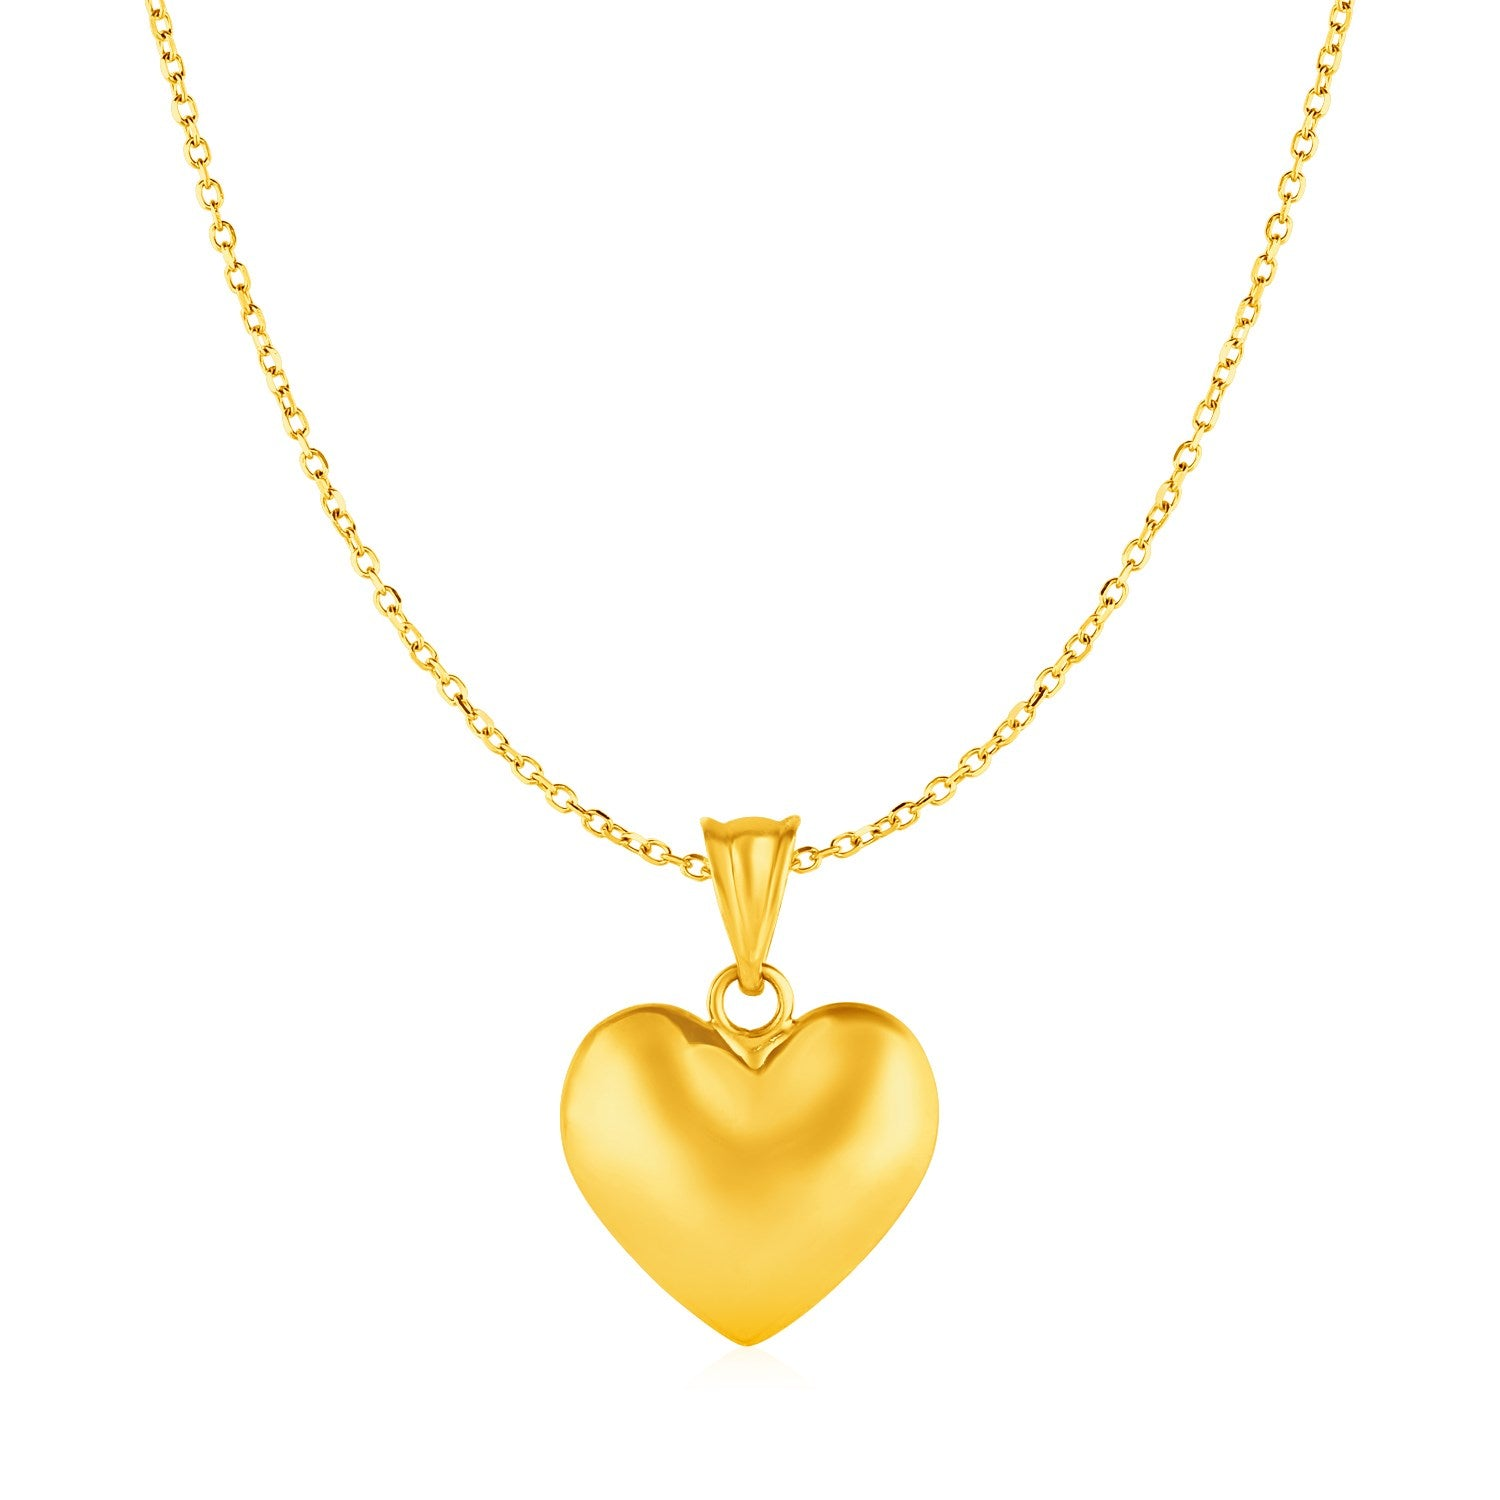 Puffed Heart Pendant in 10k Yellow Gold